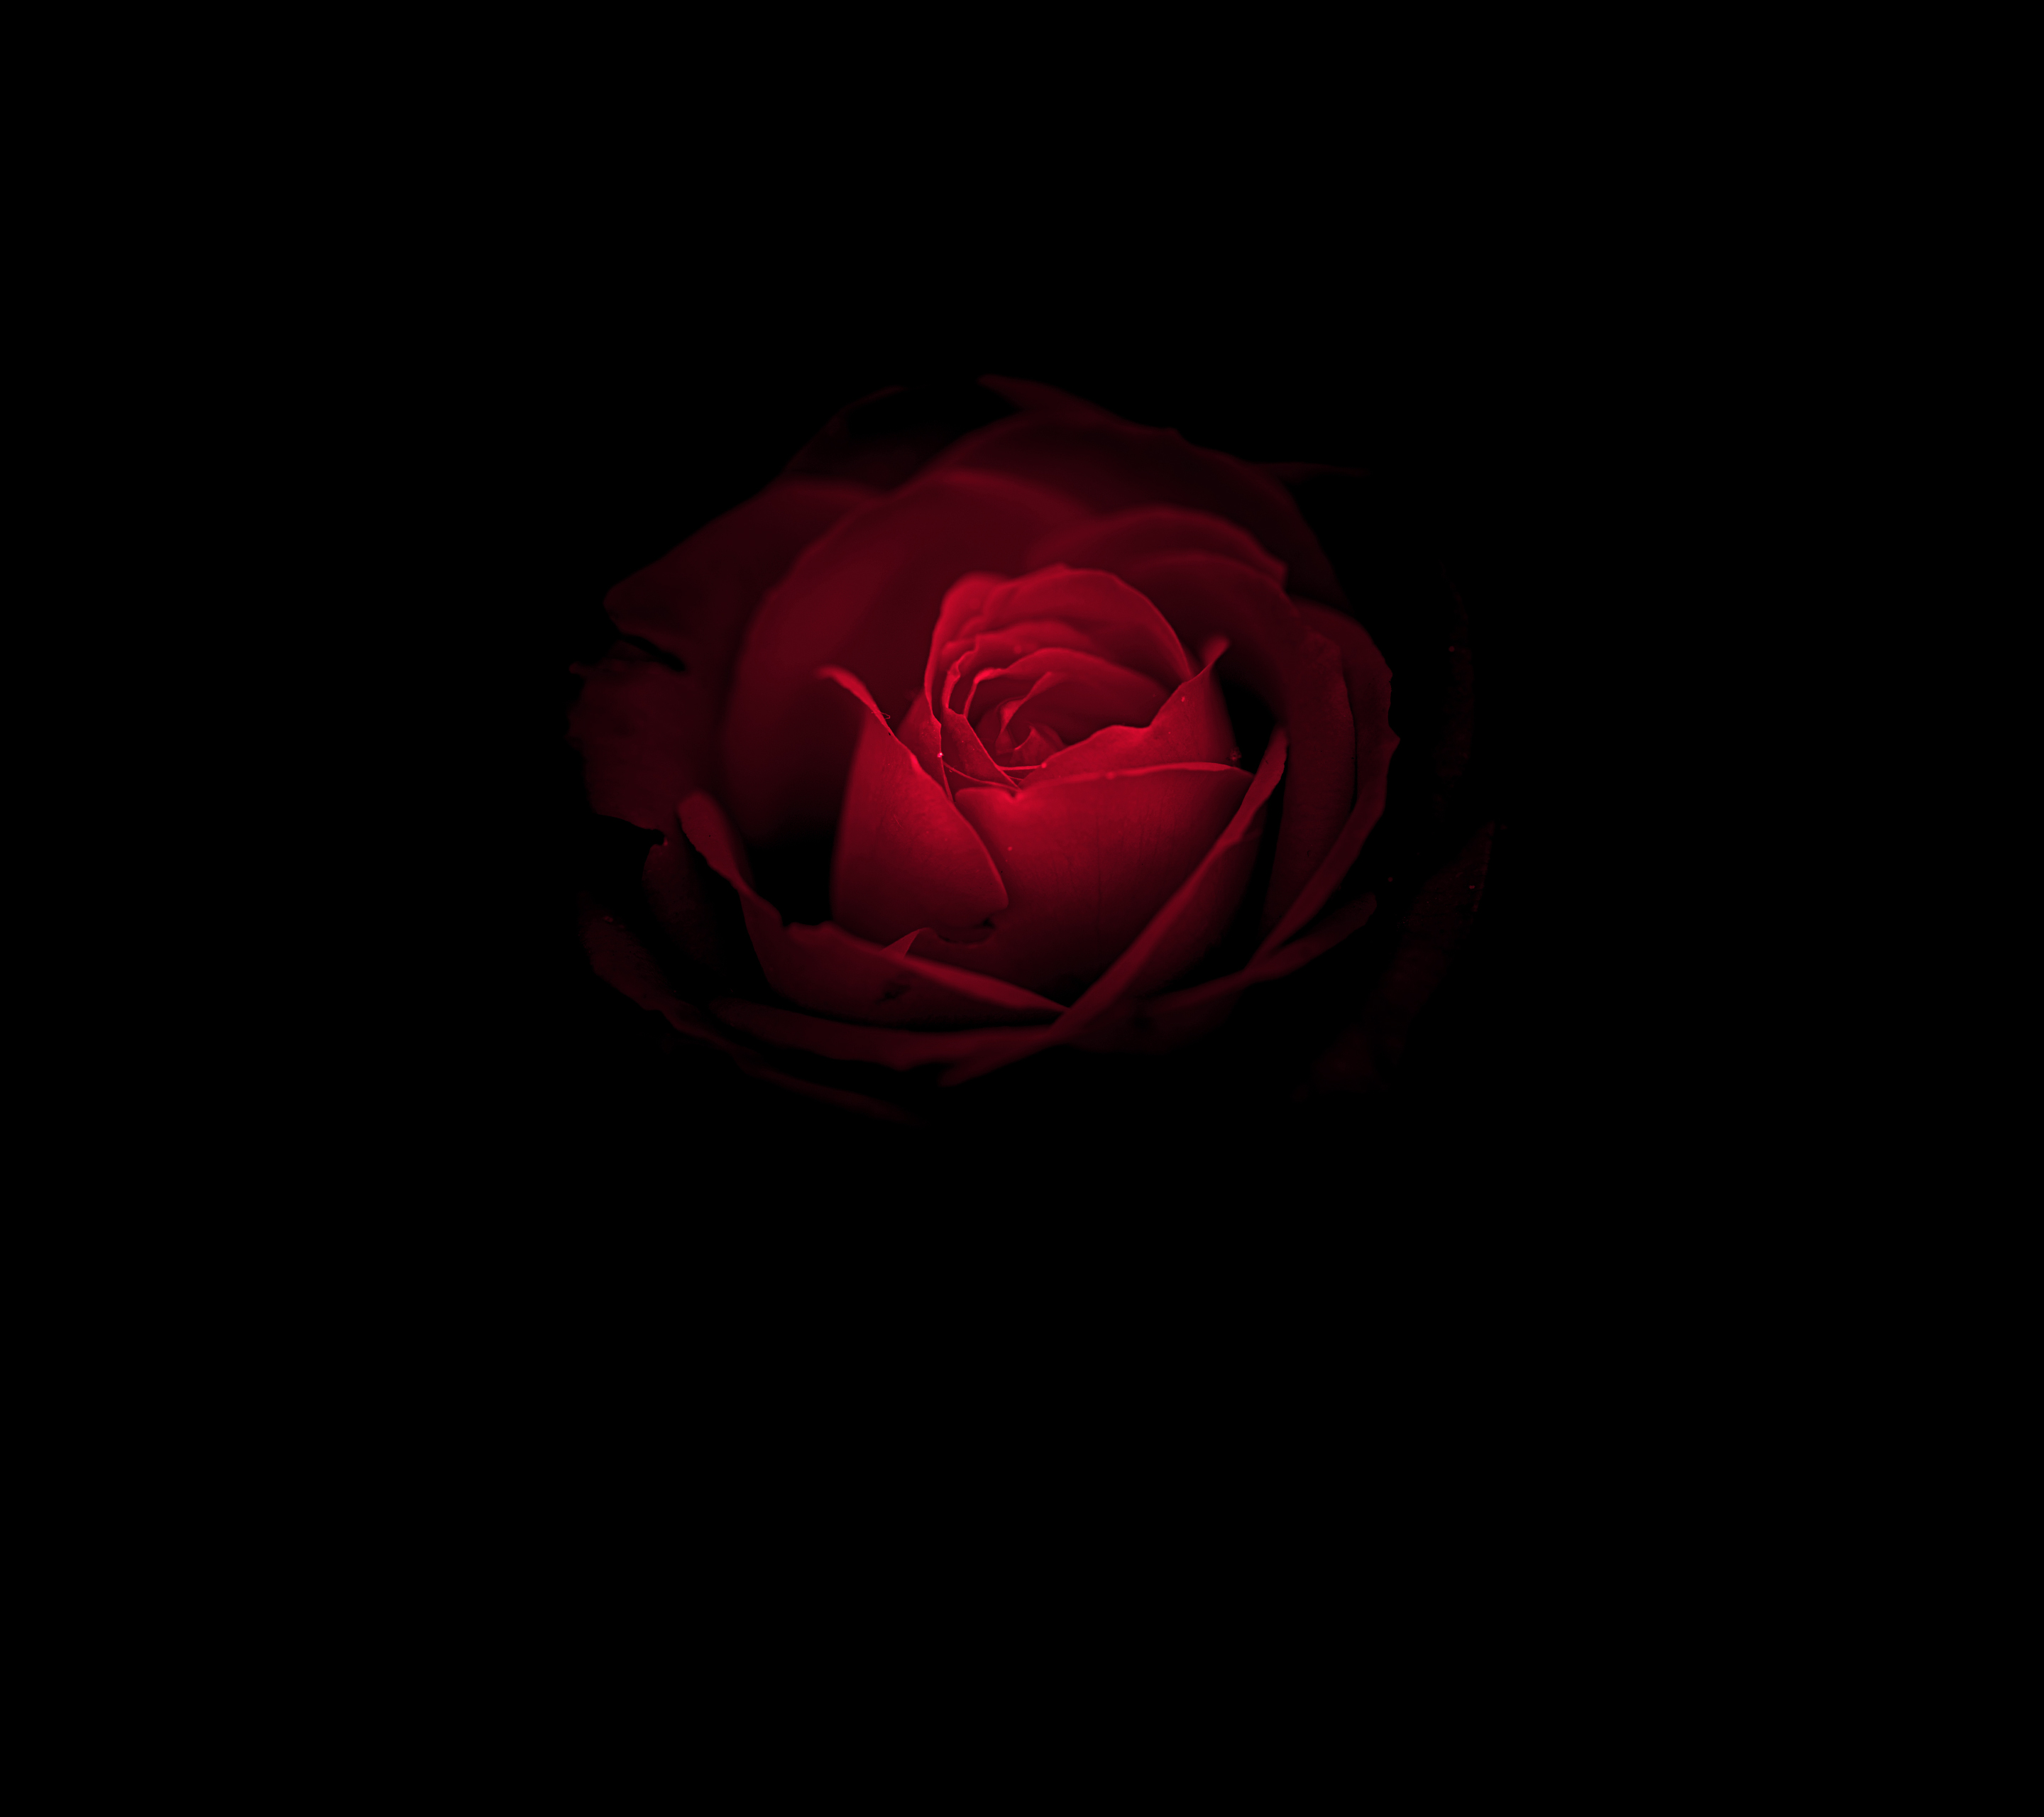 Black And Red Flower Wallpapers Top Free Black And Red Flower Backgrounds Wallpaperaccess